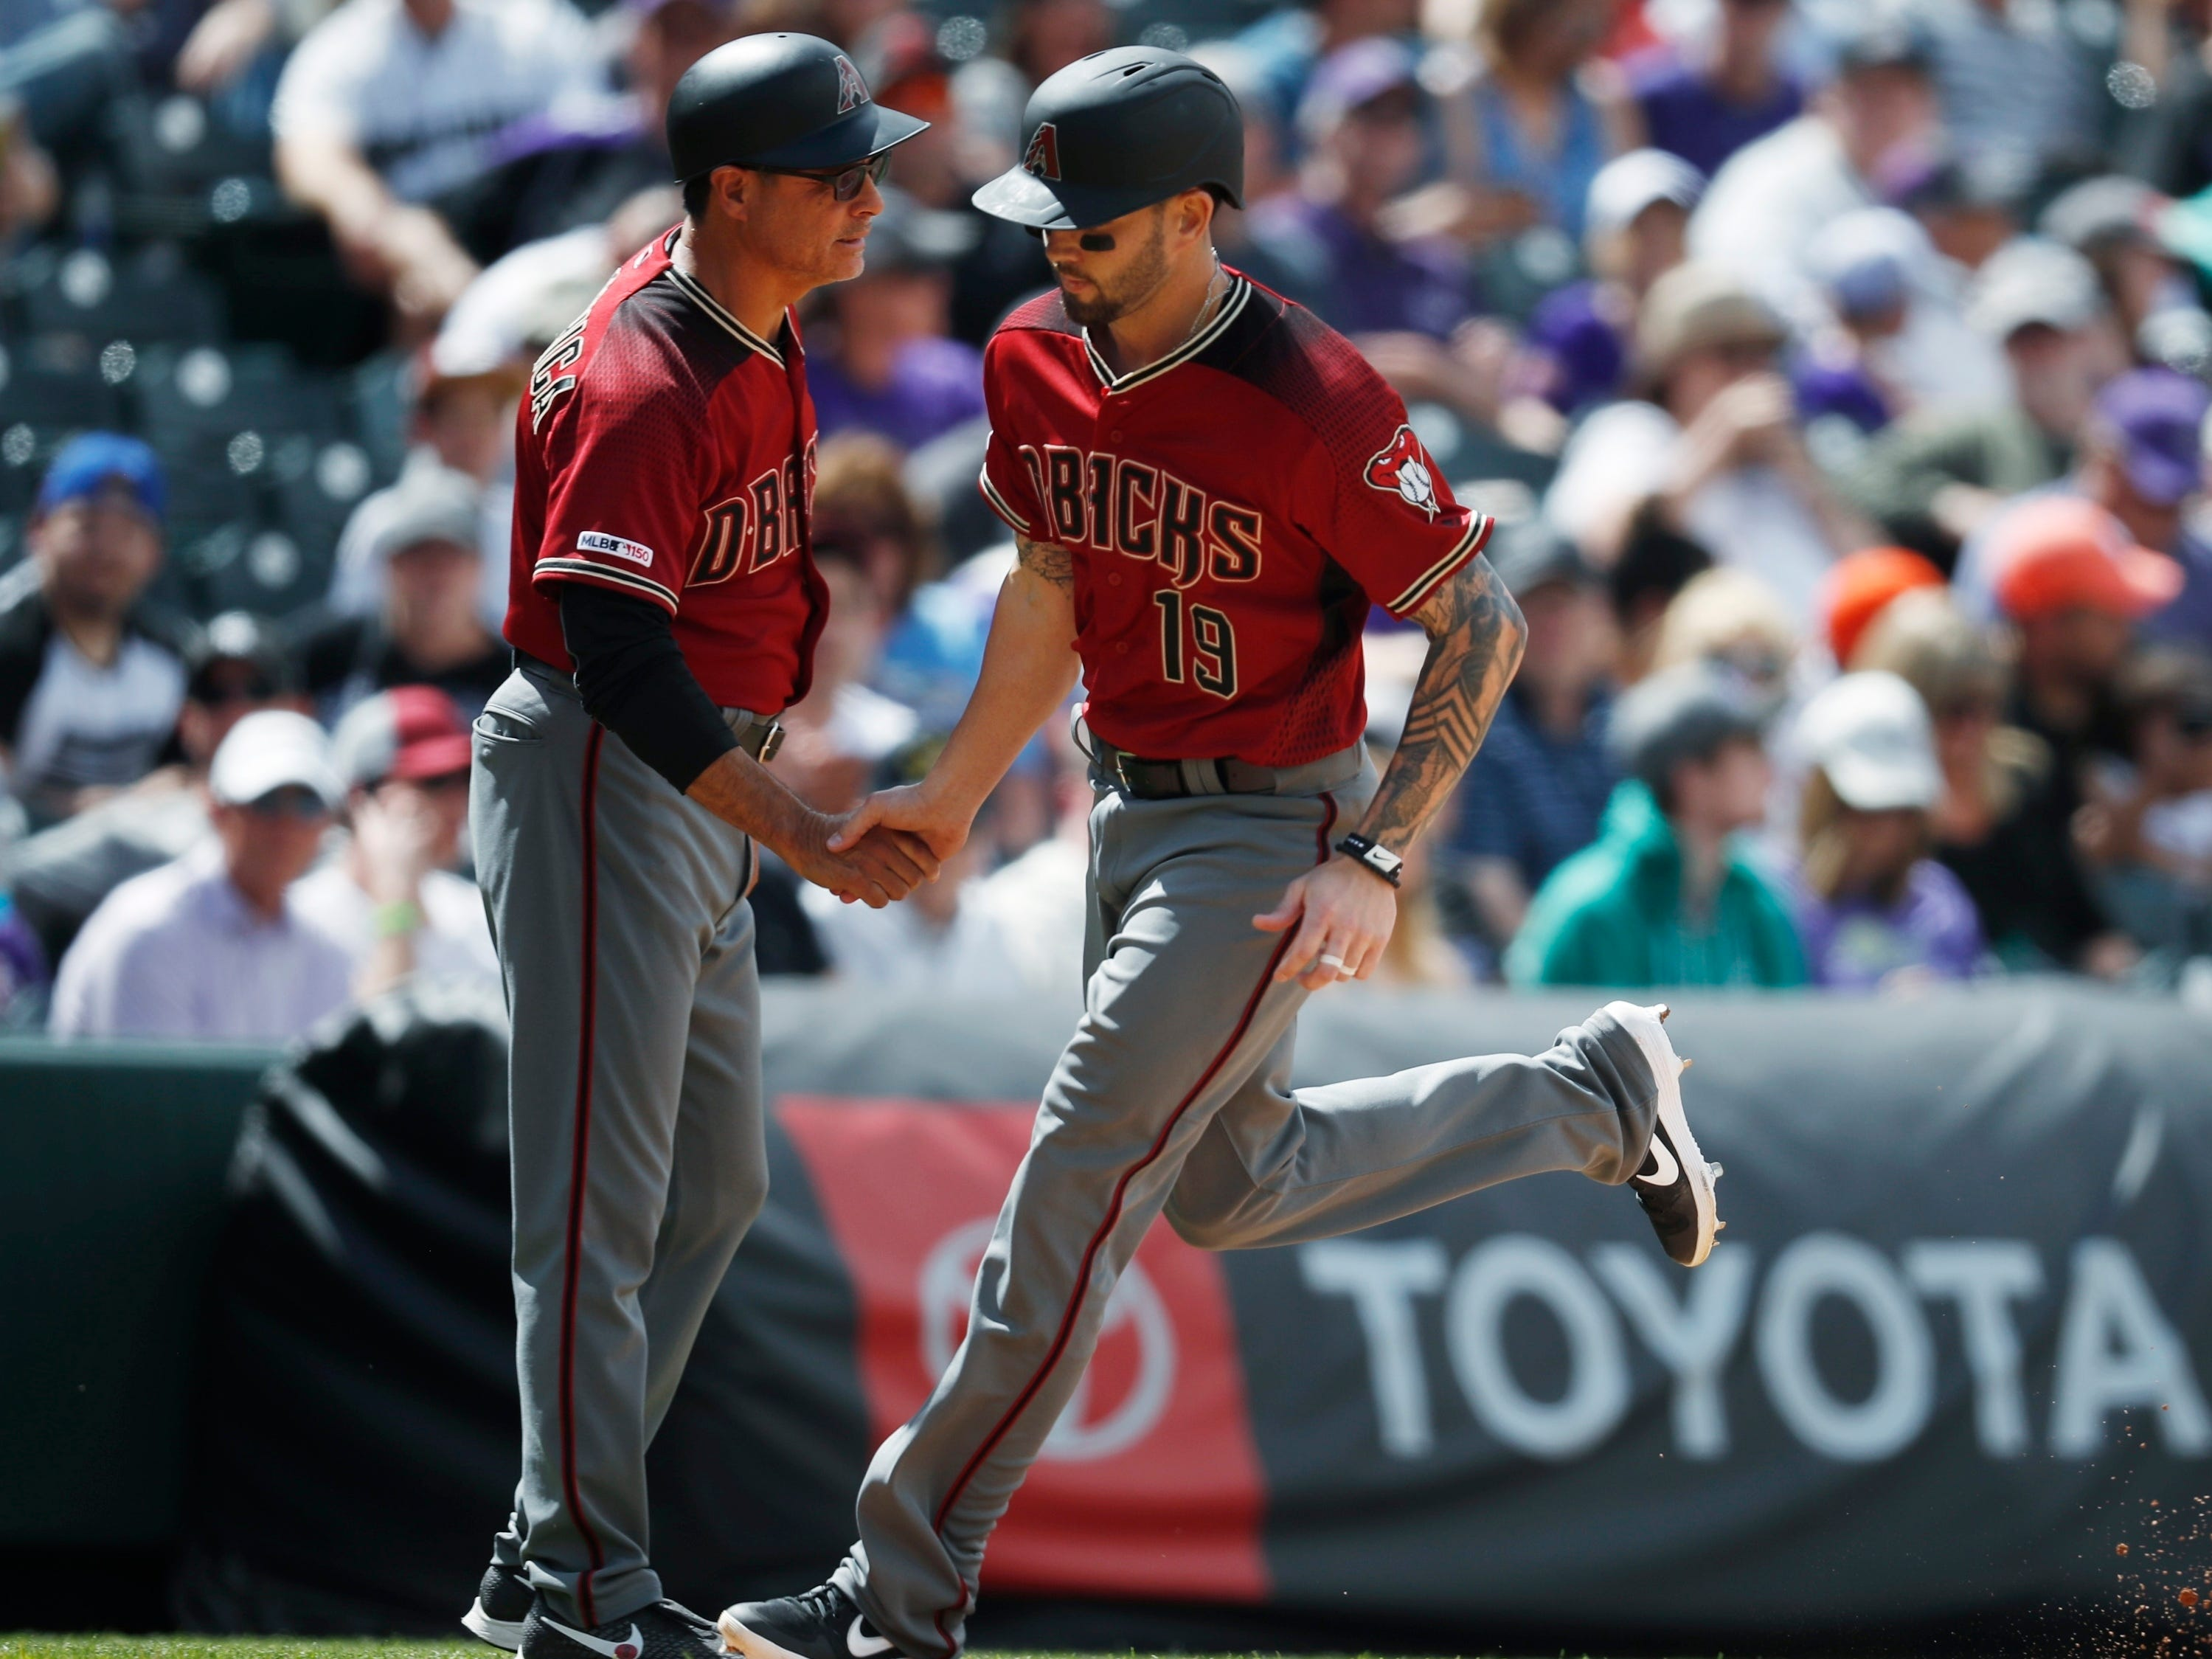 Arizona Diamondbacks third base coach Tony Perezchica, left, congratulates Blake Swihart as he circles the bases after hitting a two-run home run off Colorado Rockies starting pitcher German Marquez in the sixth inning of a baseball game Sunday, May 5, 2019, in Denver. (AP Photo/David Zalubowski)